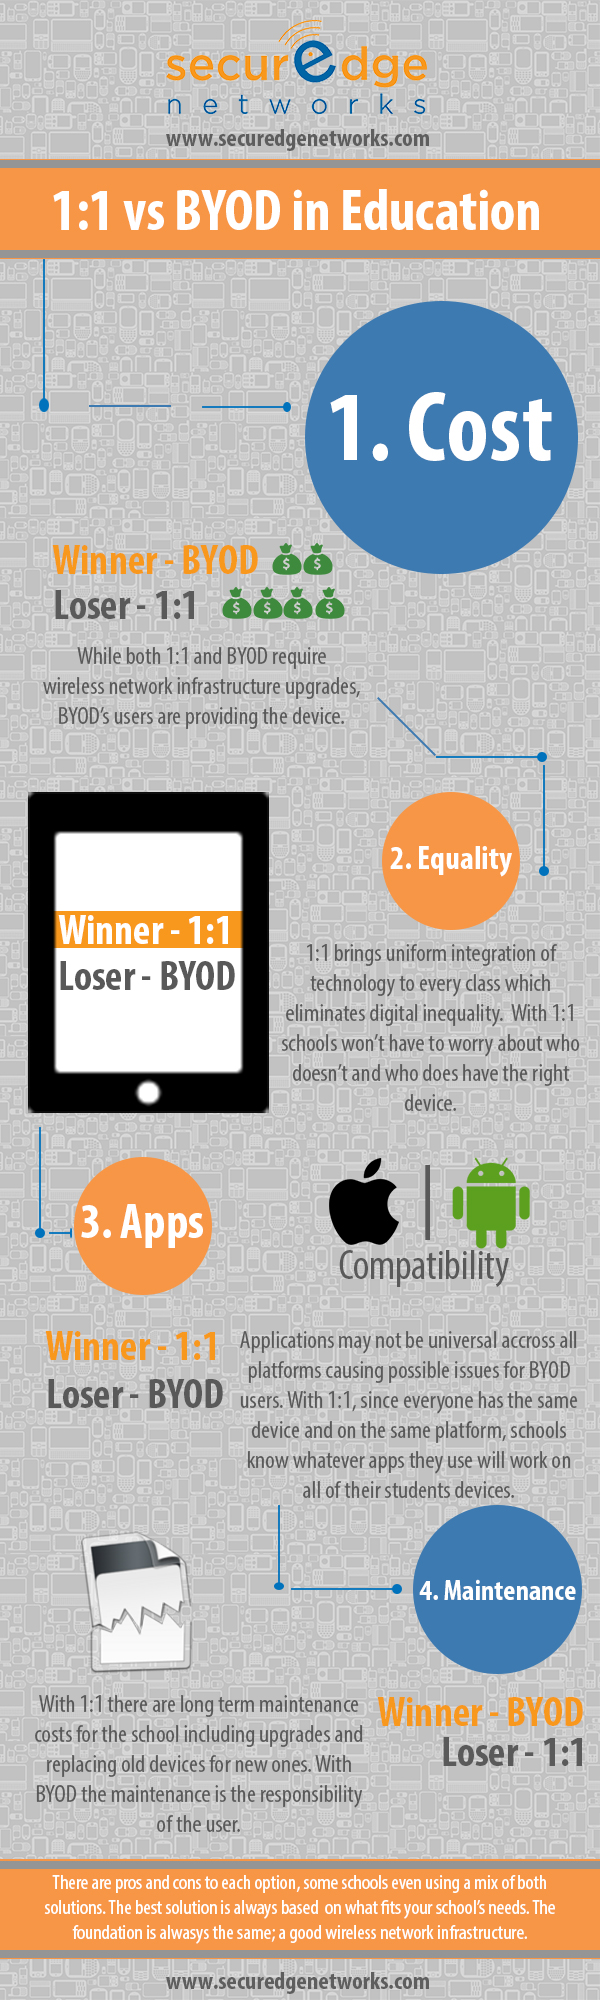 1:1 vs BYOD in education, BYOD solutions, ipads in the classroom, school wireless network